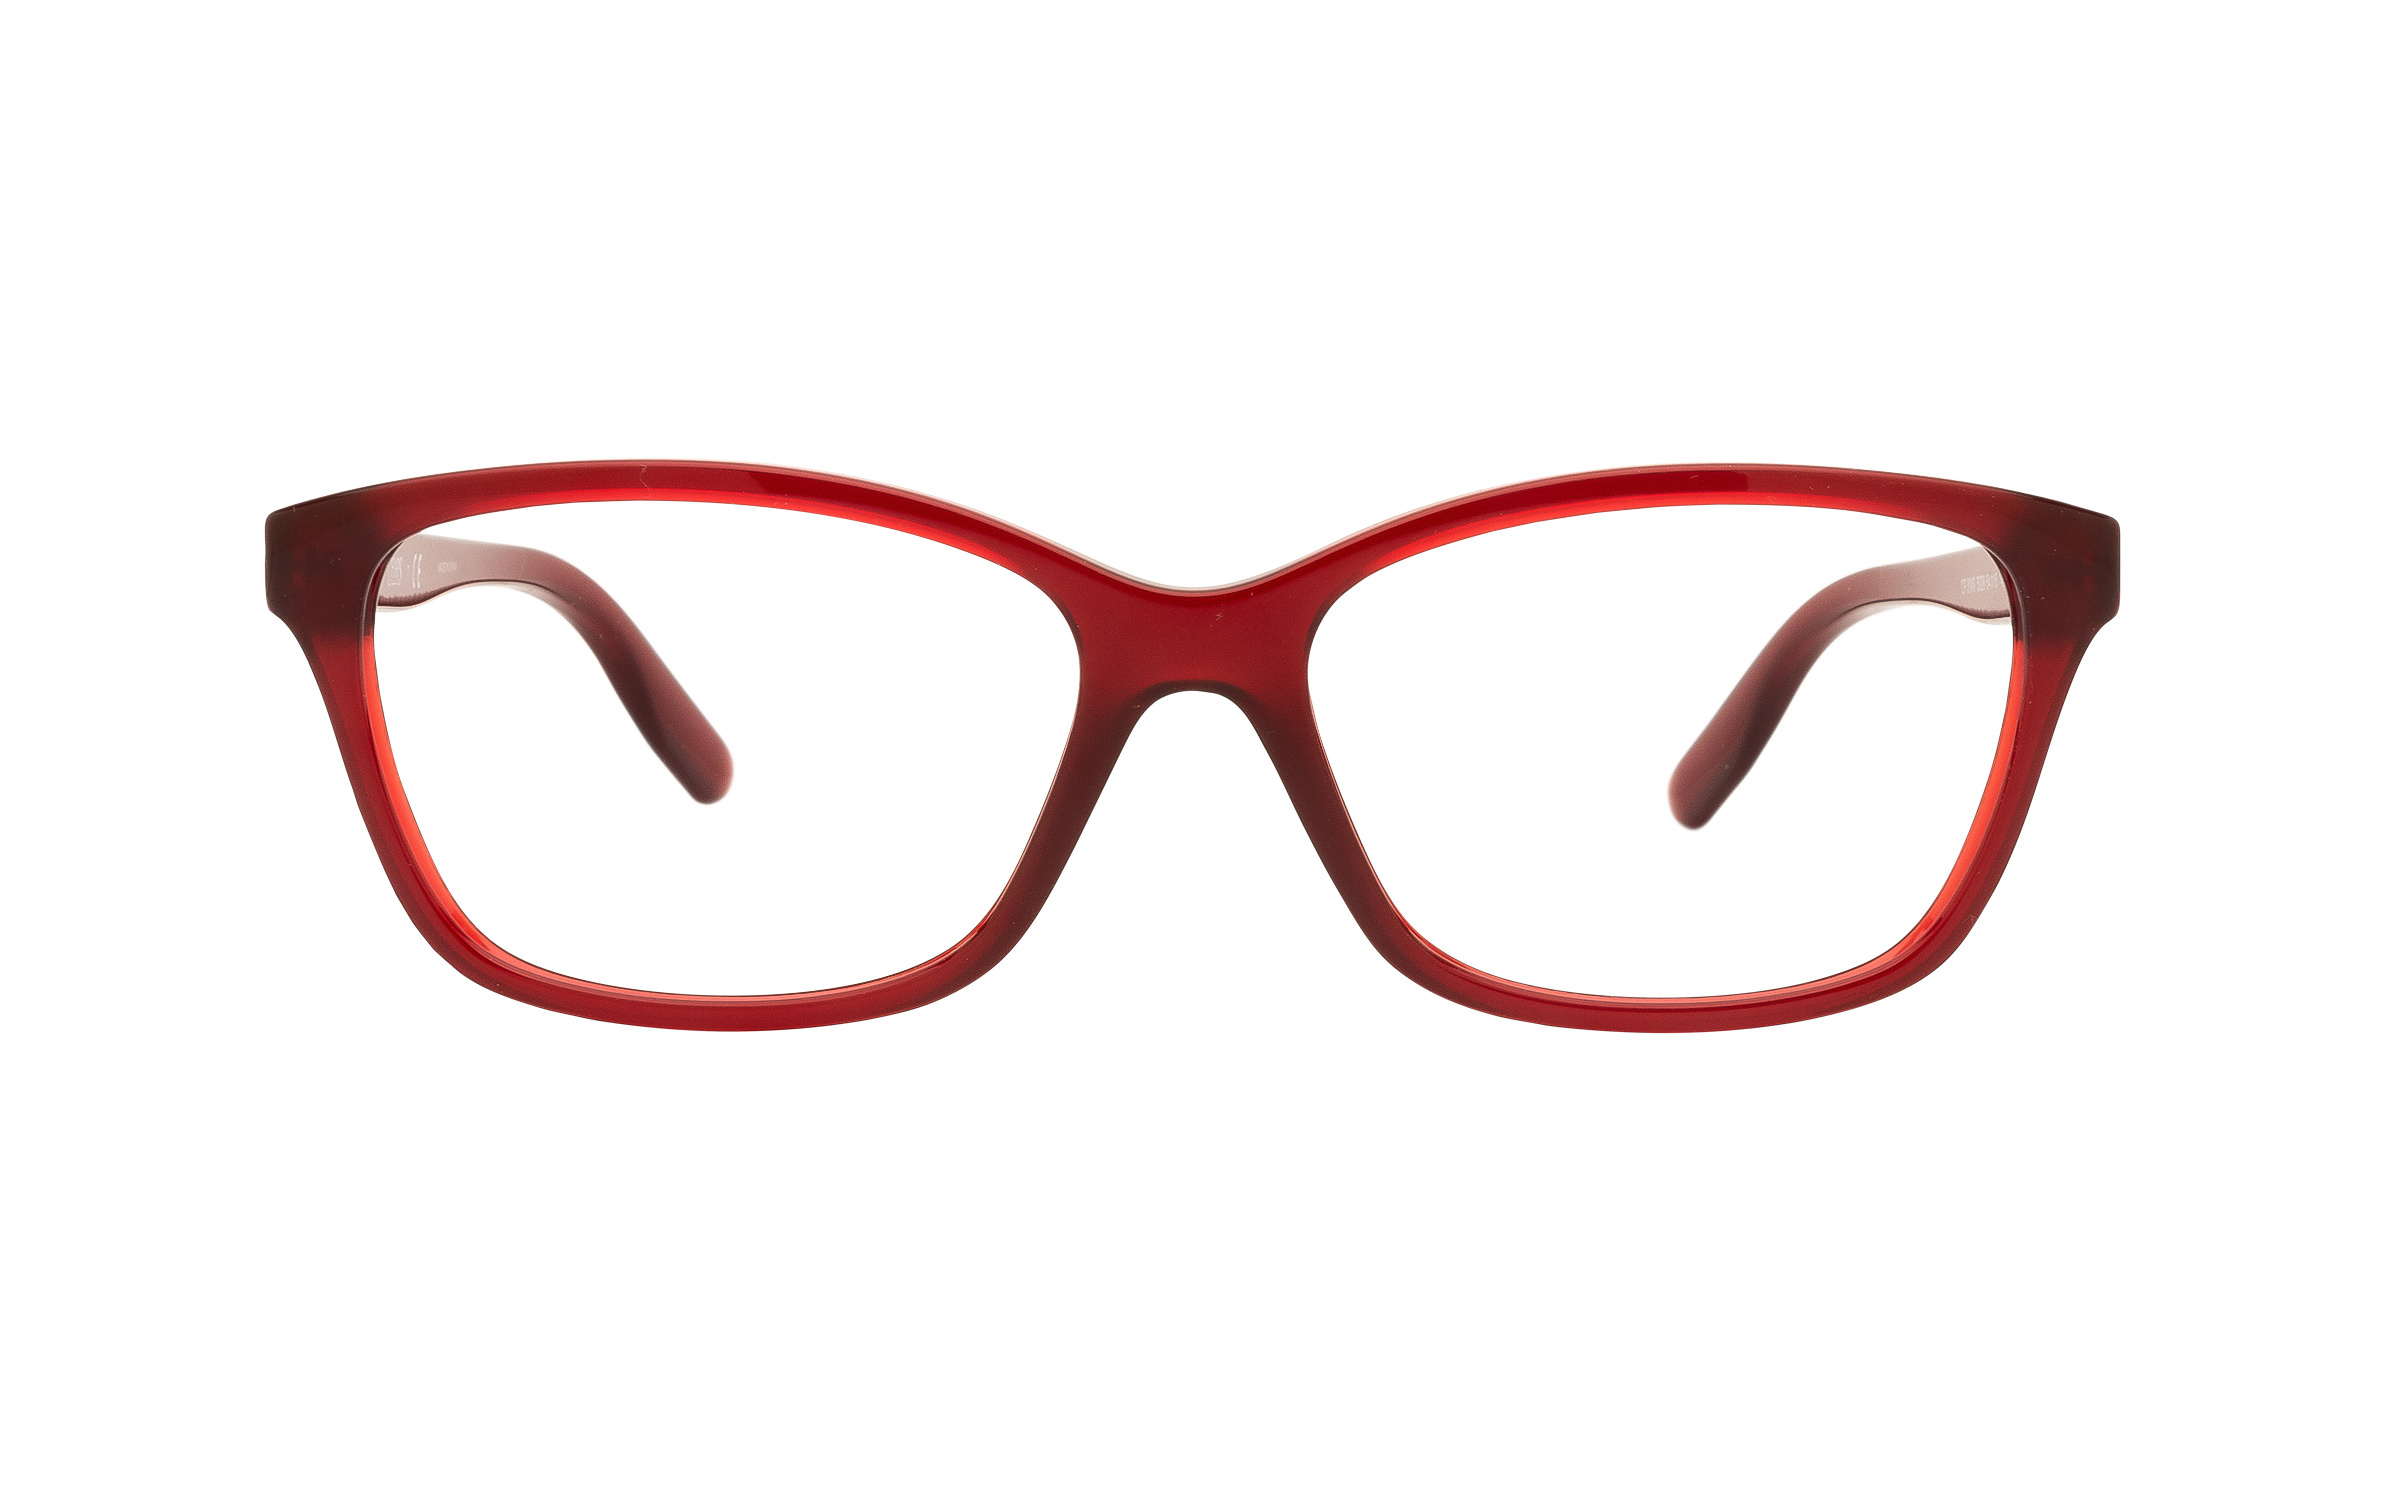 http://www.coastal.com/ - Chaps CP3049 5926 (54) Eyeglasses and Frame in Opaline Red | Acetate – Online Coastal